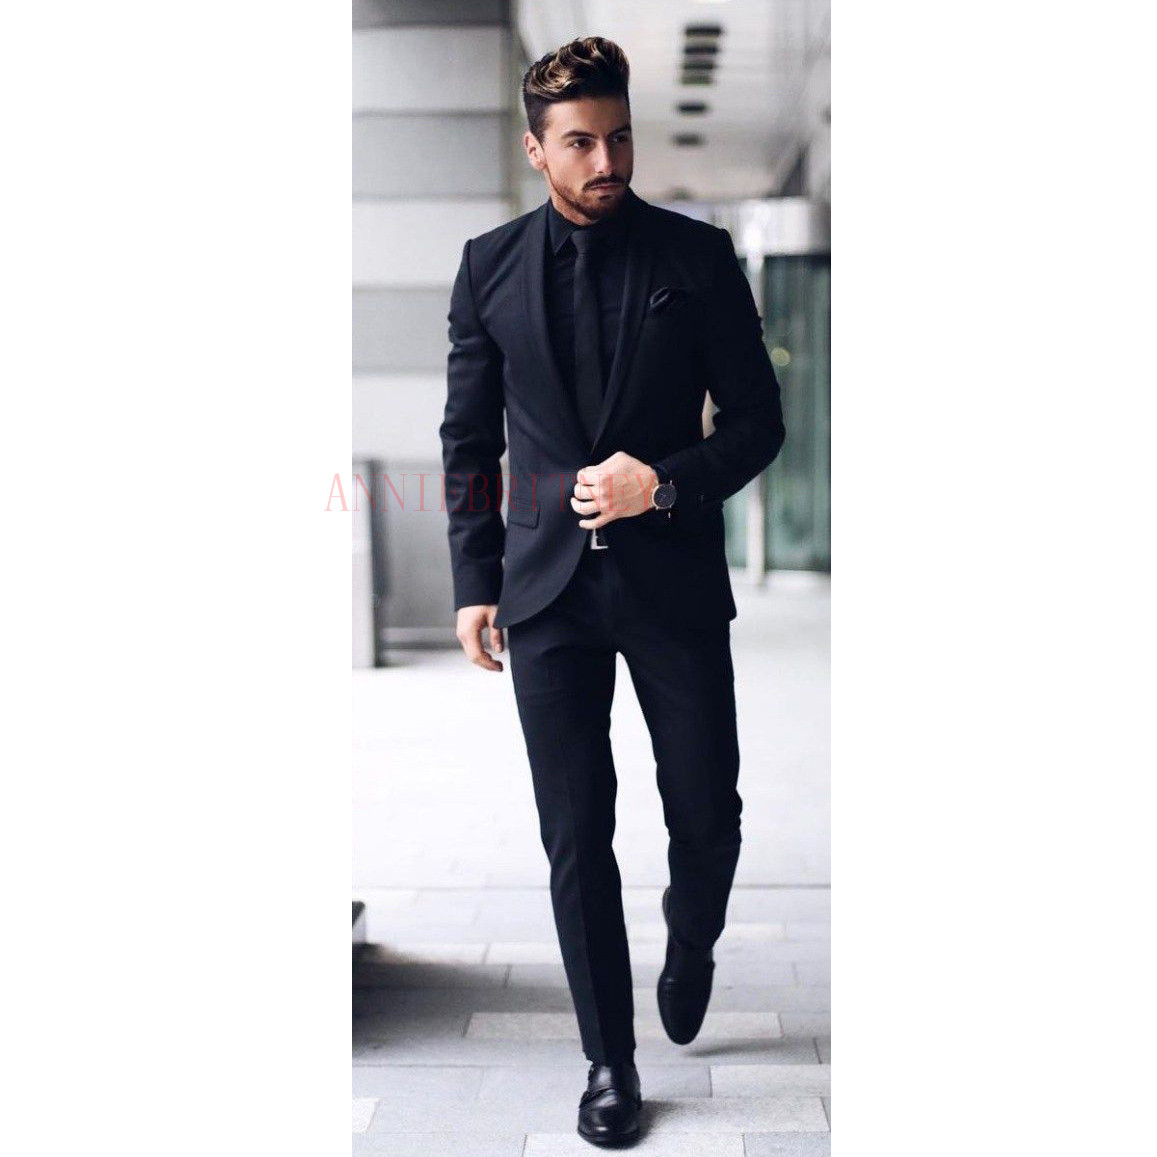 ANNIEBRITNEY Latest Coat Pant Designs Man Suit Custom Made Slim Fit Blazer With Pants Black Groom Wedding Tuxedo Mens Suits Set